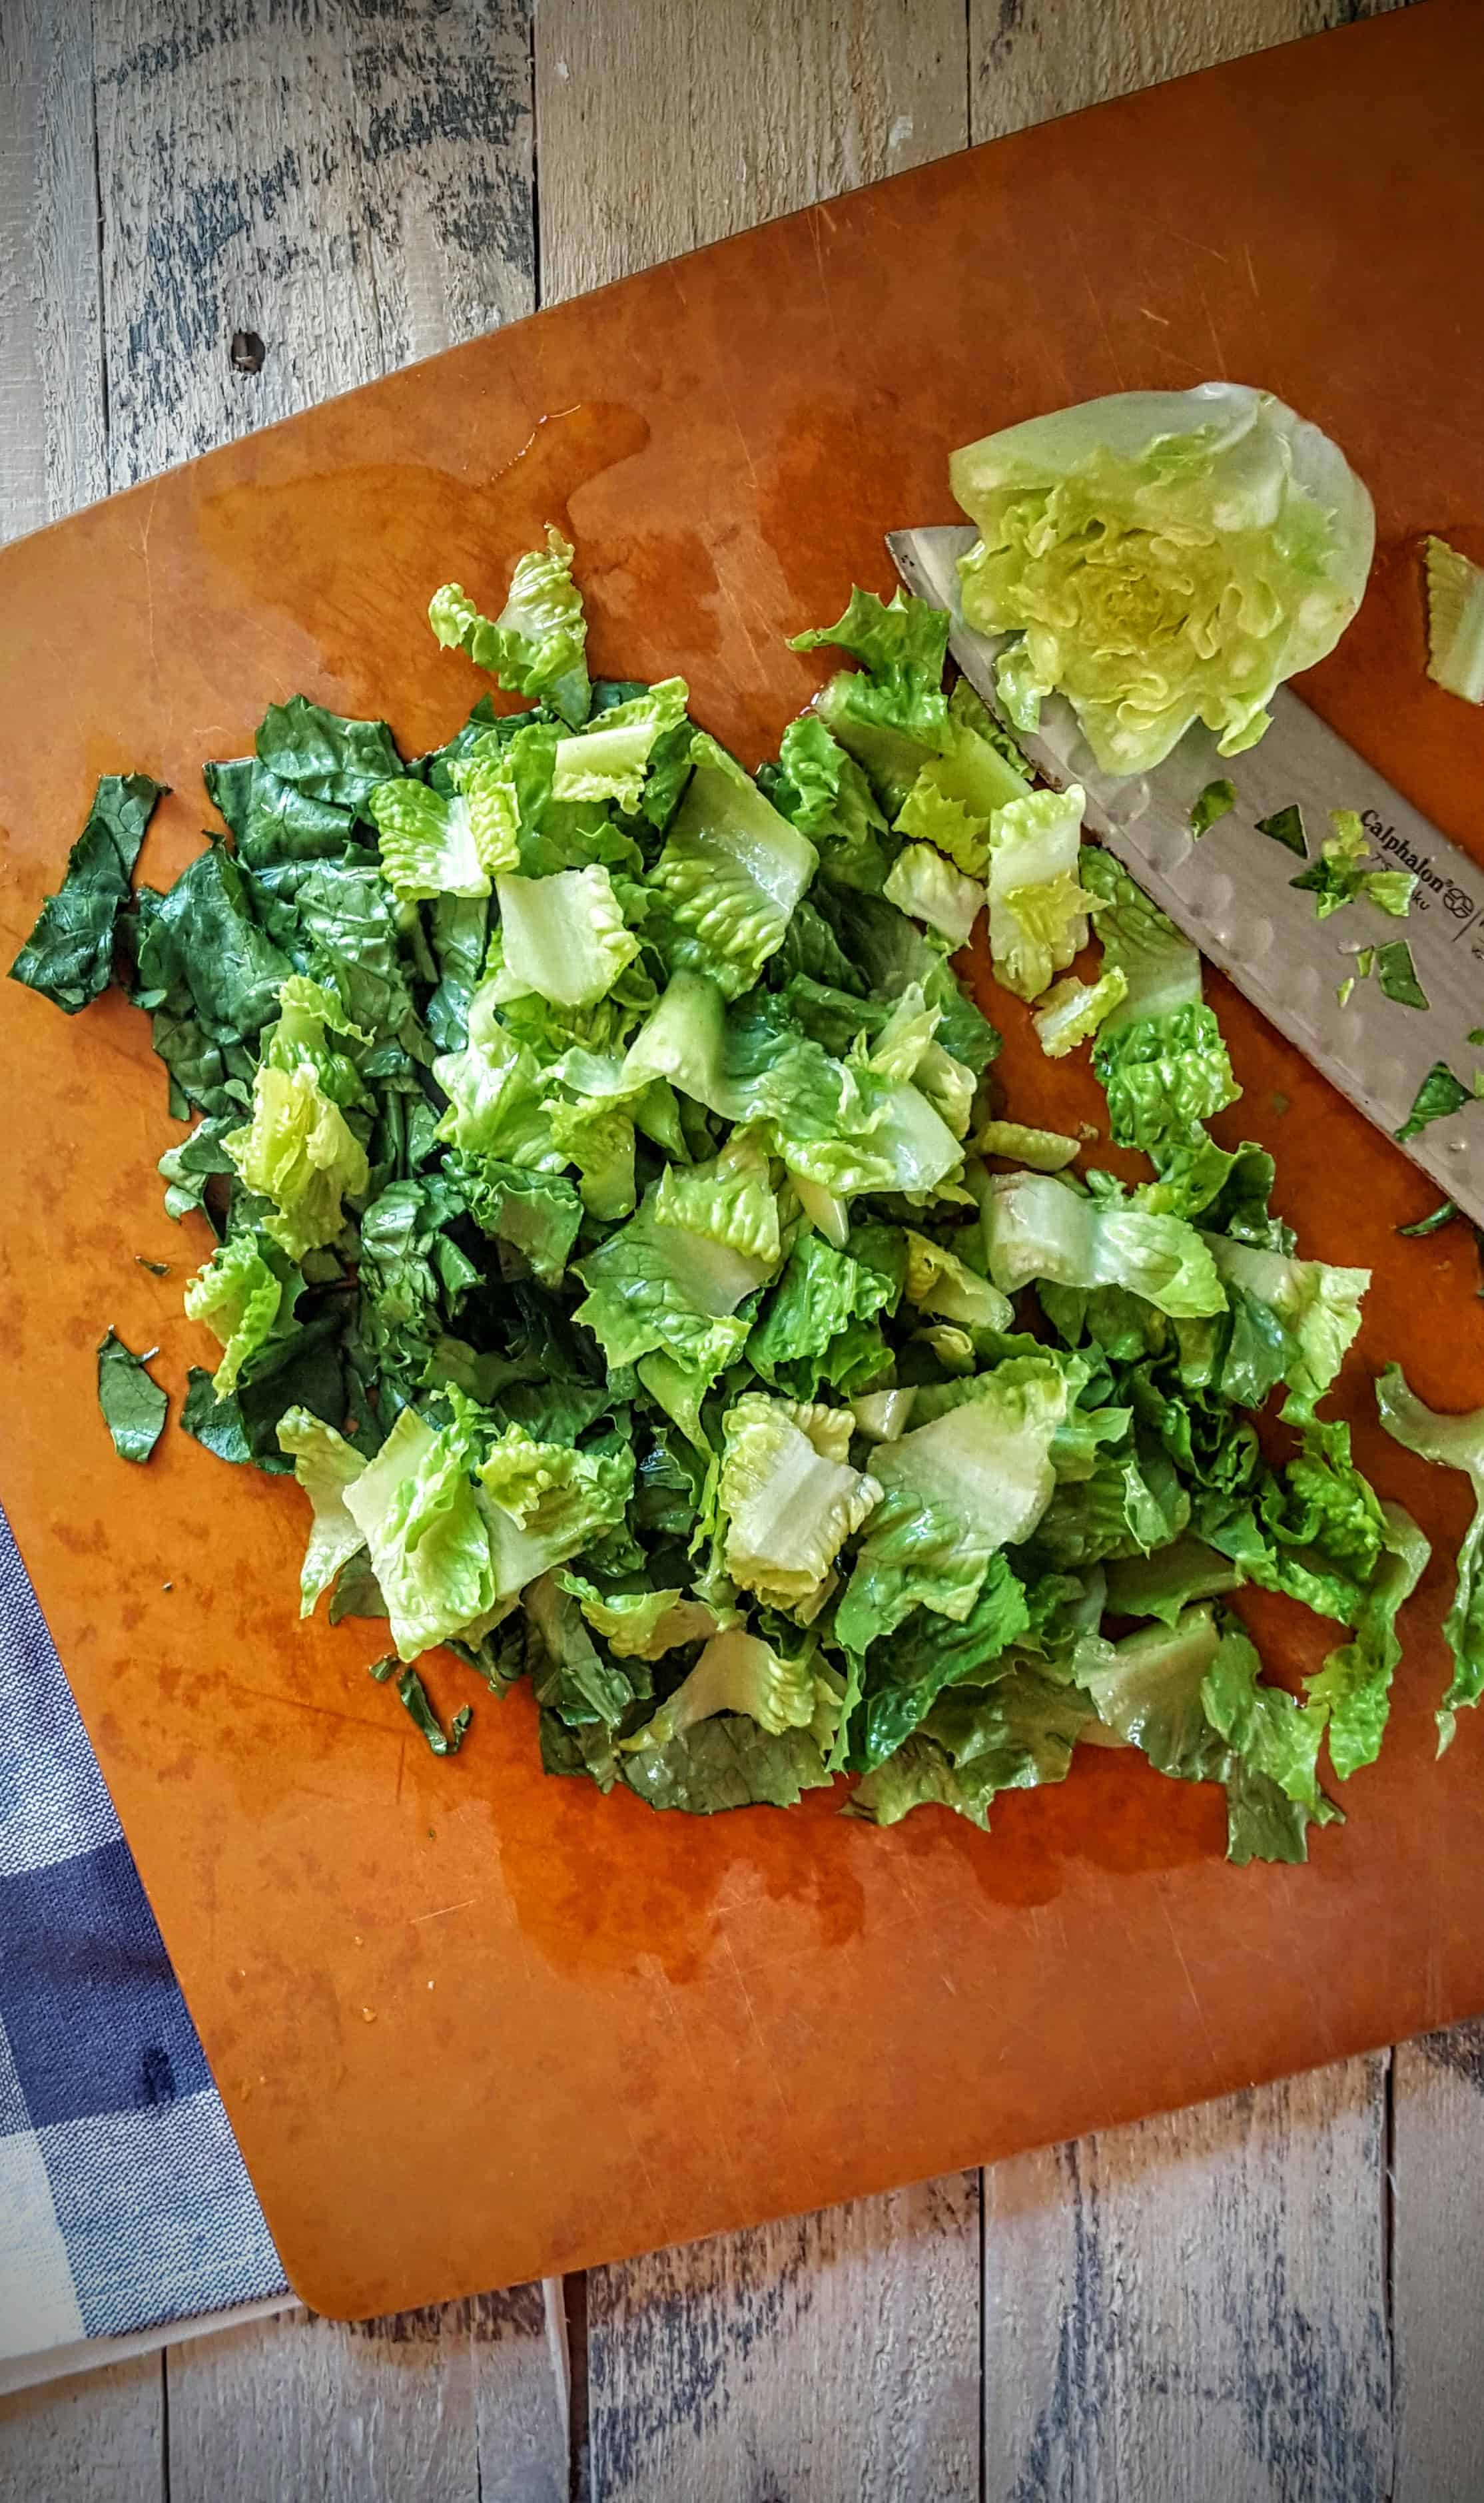 Broiled Romaine Salad with Diced Tomatoes and Fresh Dill- Shaw's Simple Swaps